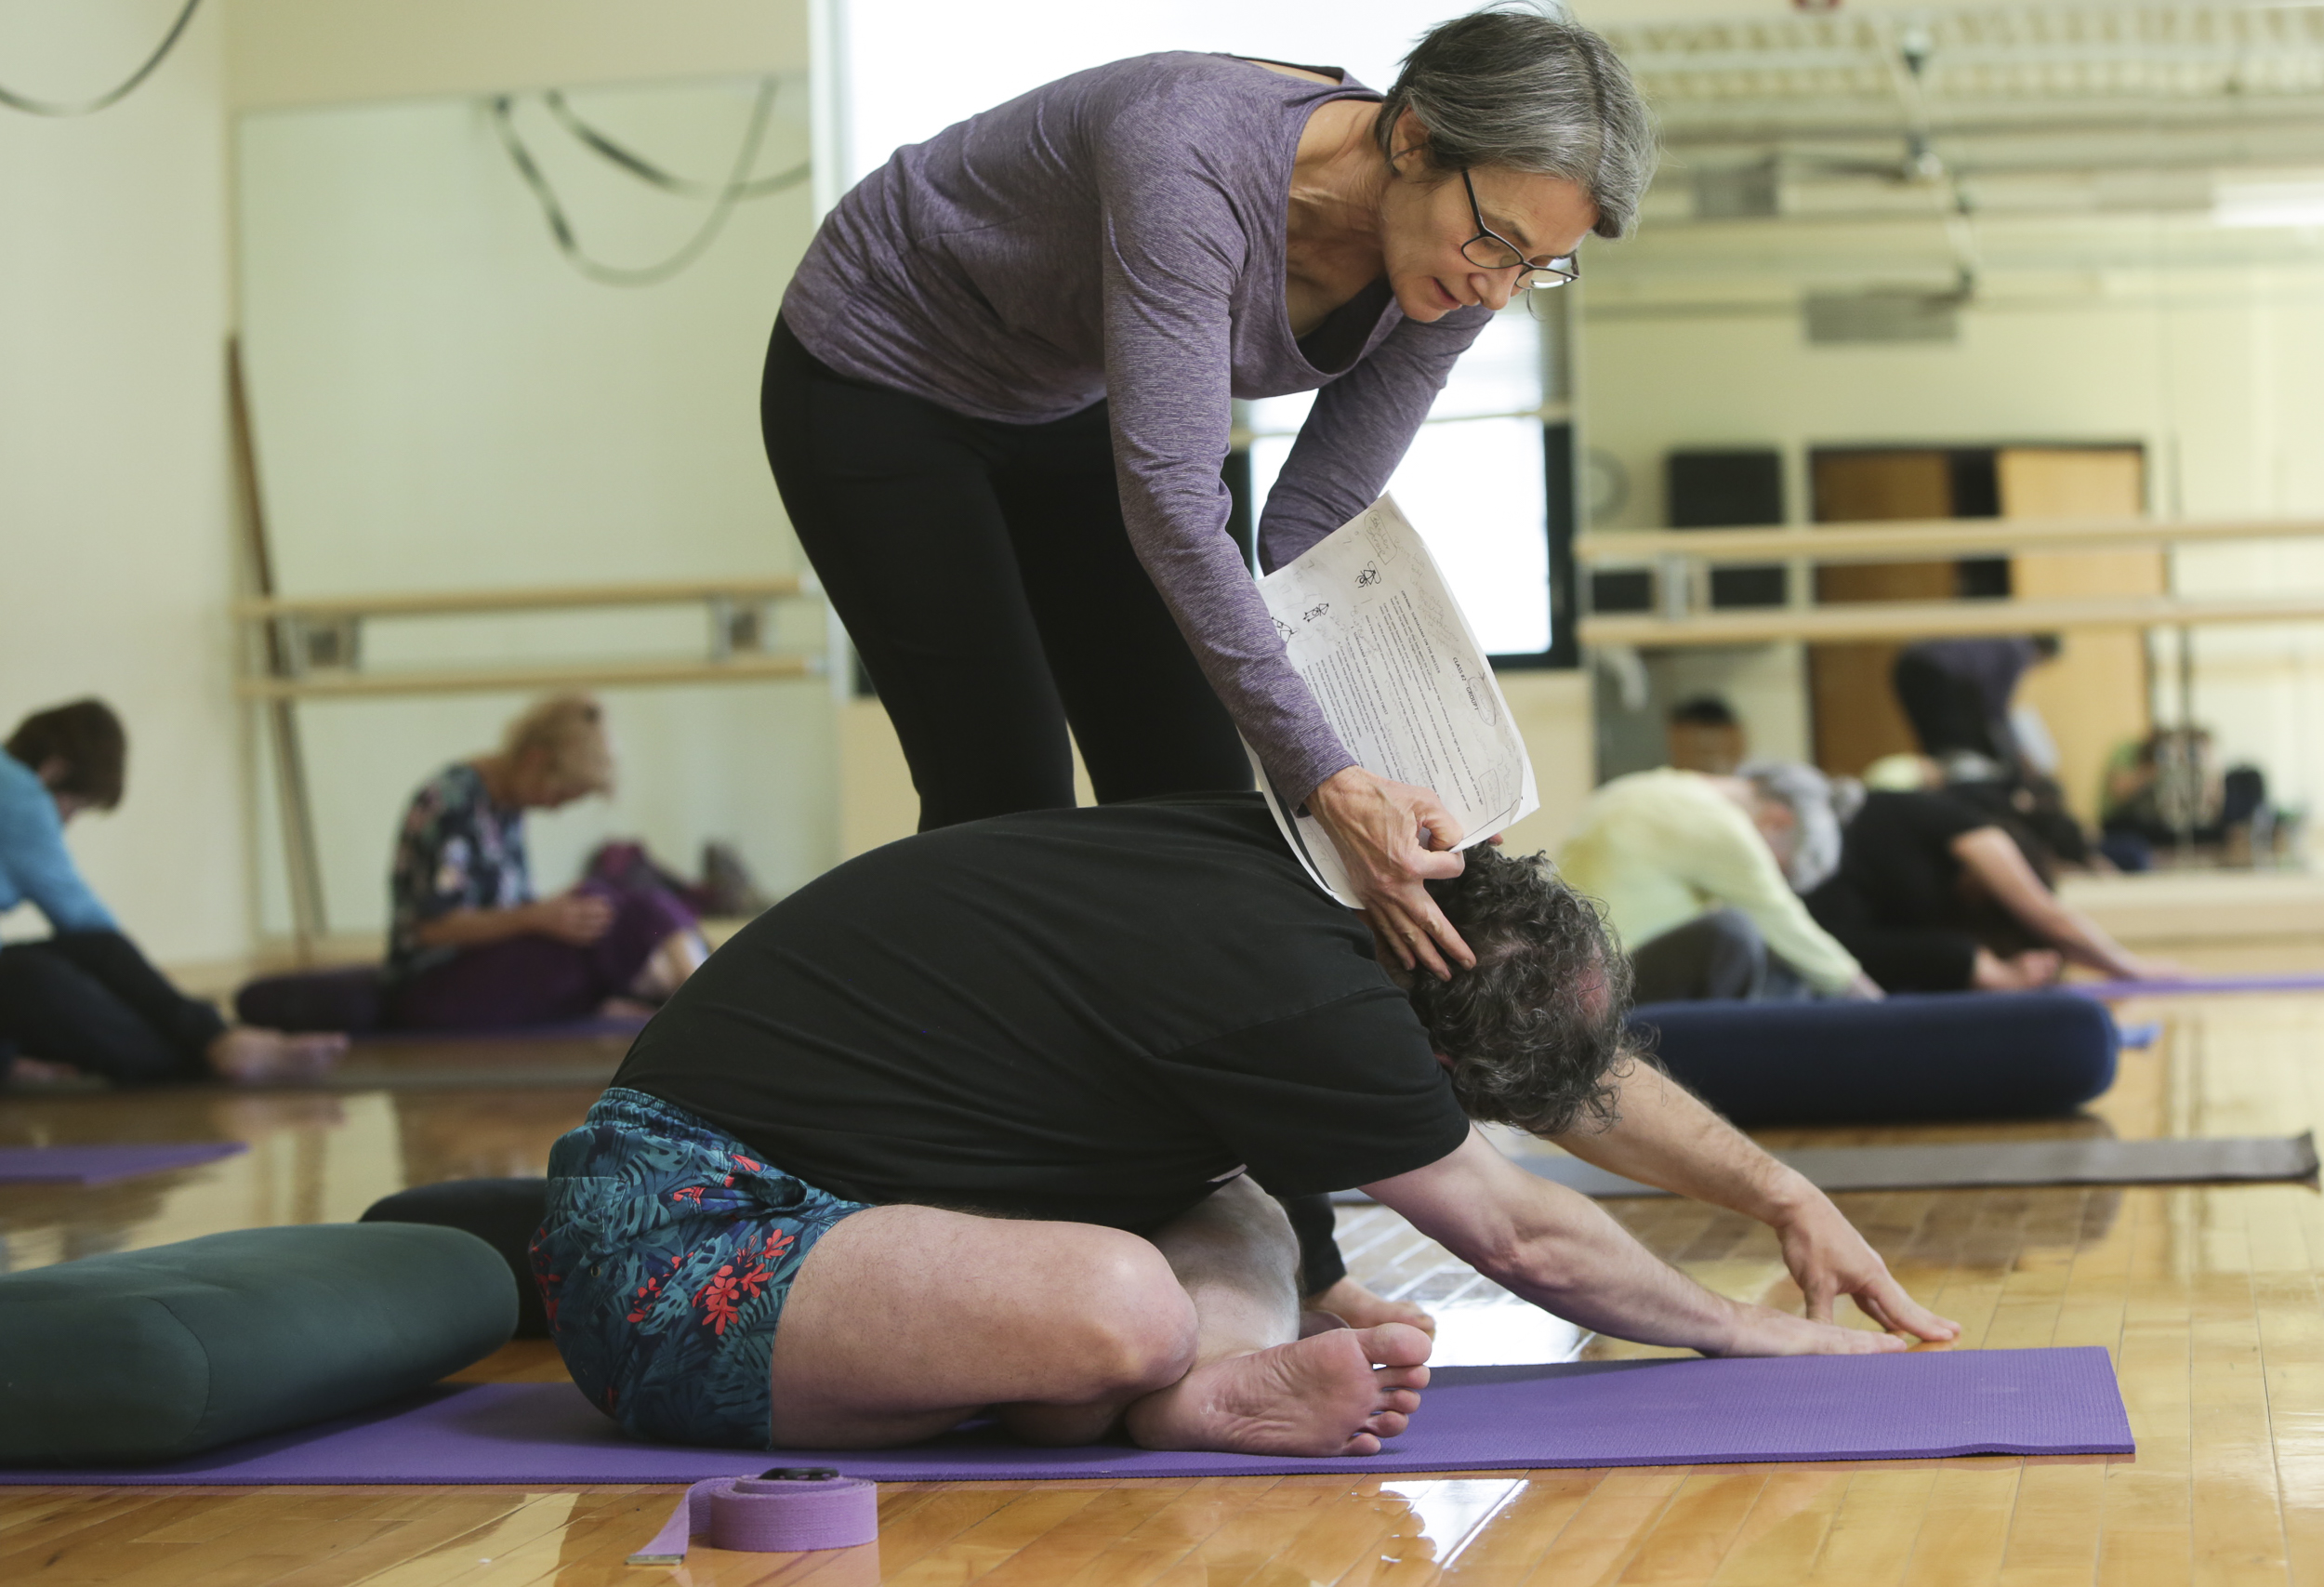 Wendy Zerin, a yoga instructor helps Kevin Pettit with a stretching exercise during a yoga class at the North Boulder Recreational Center, in Boulder, Colorado, on April 25, 2018. Everyone who attended this yoga class is apart of the program called Journey through Expand which provides recreation and leisure activities for adults with traumatic brain injuries.